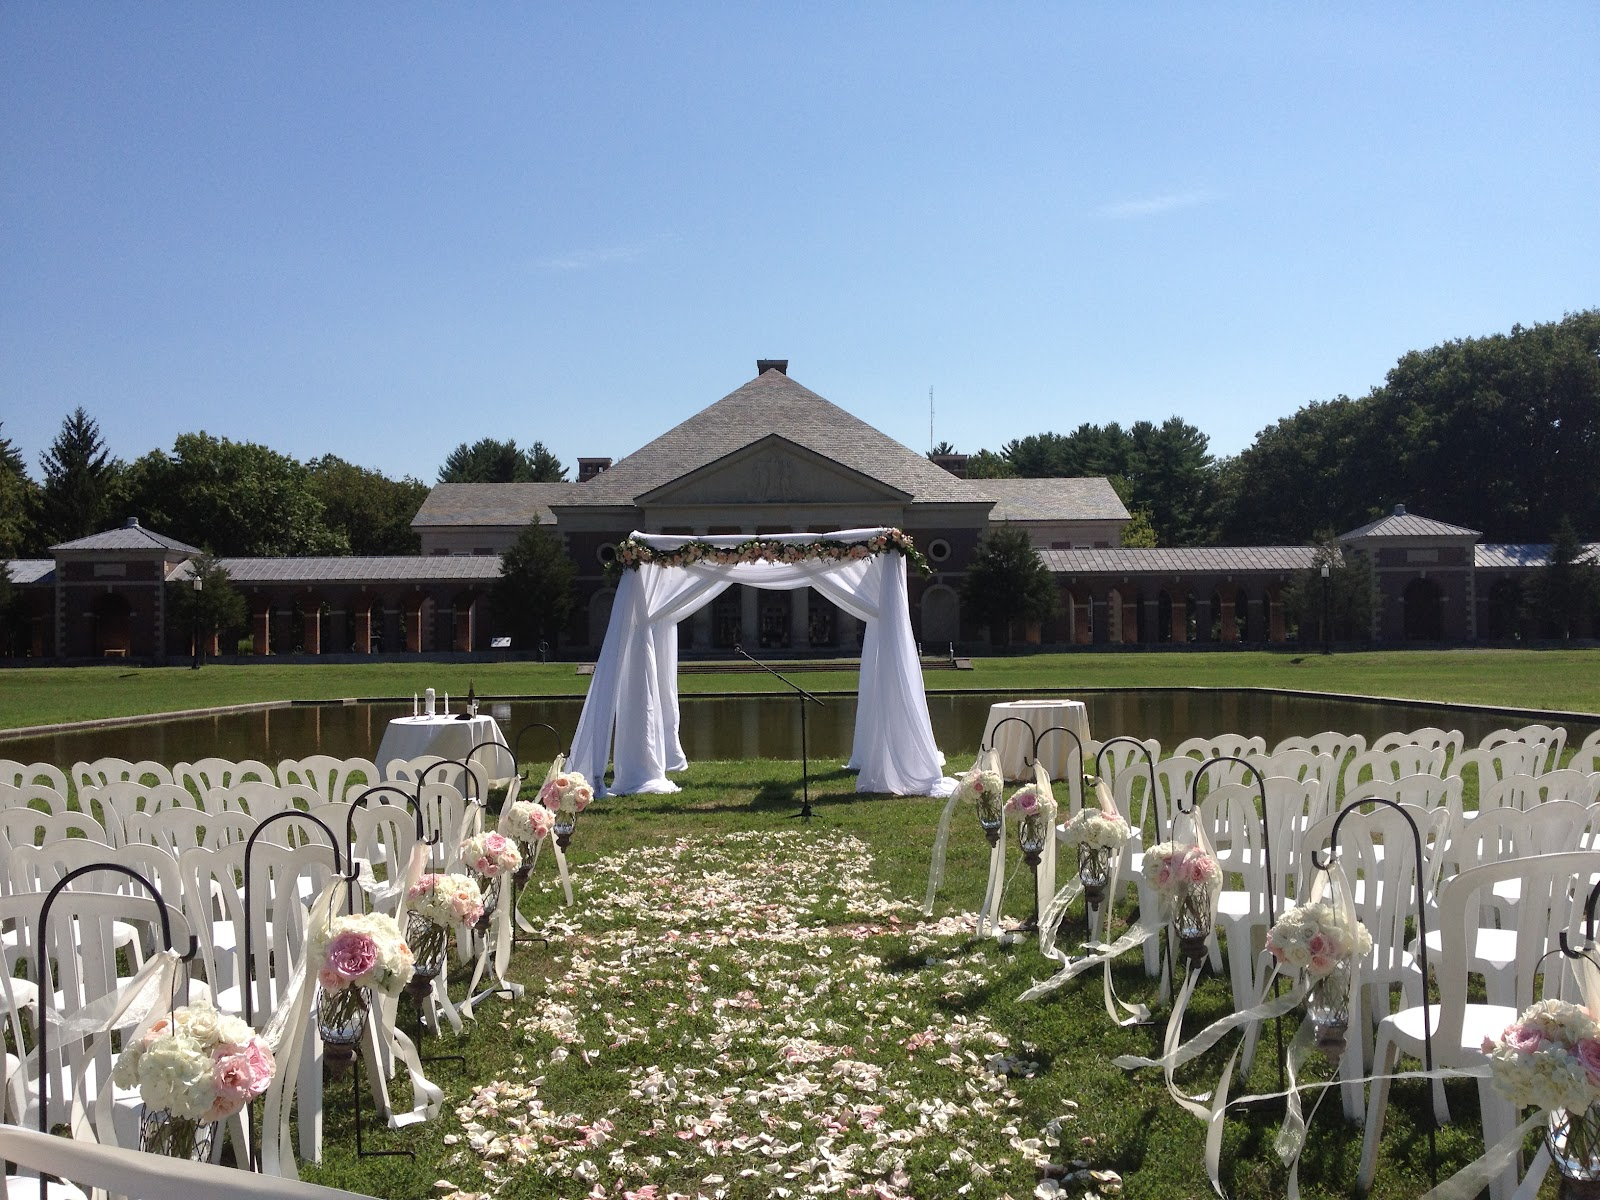 Upstate NY Wedding Venues - Capital District - North Country - Albany - Schenectady - Saratoga - Lake George - Bolton Landing - Scotia - Hall of Springs